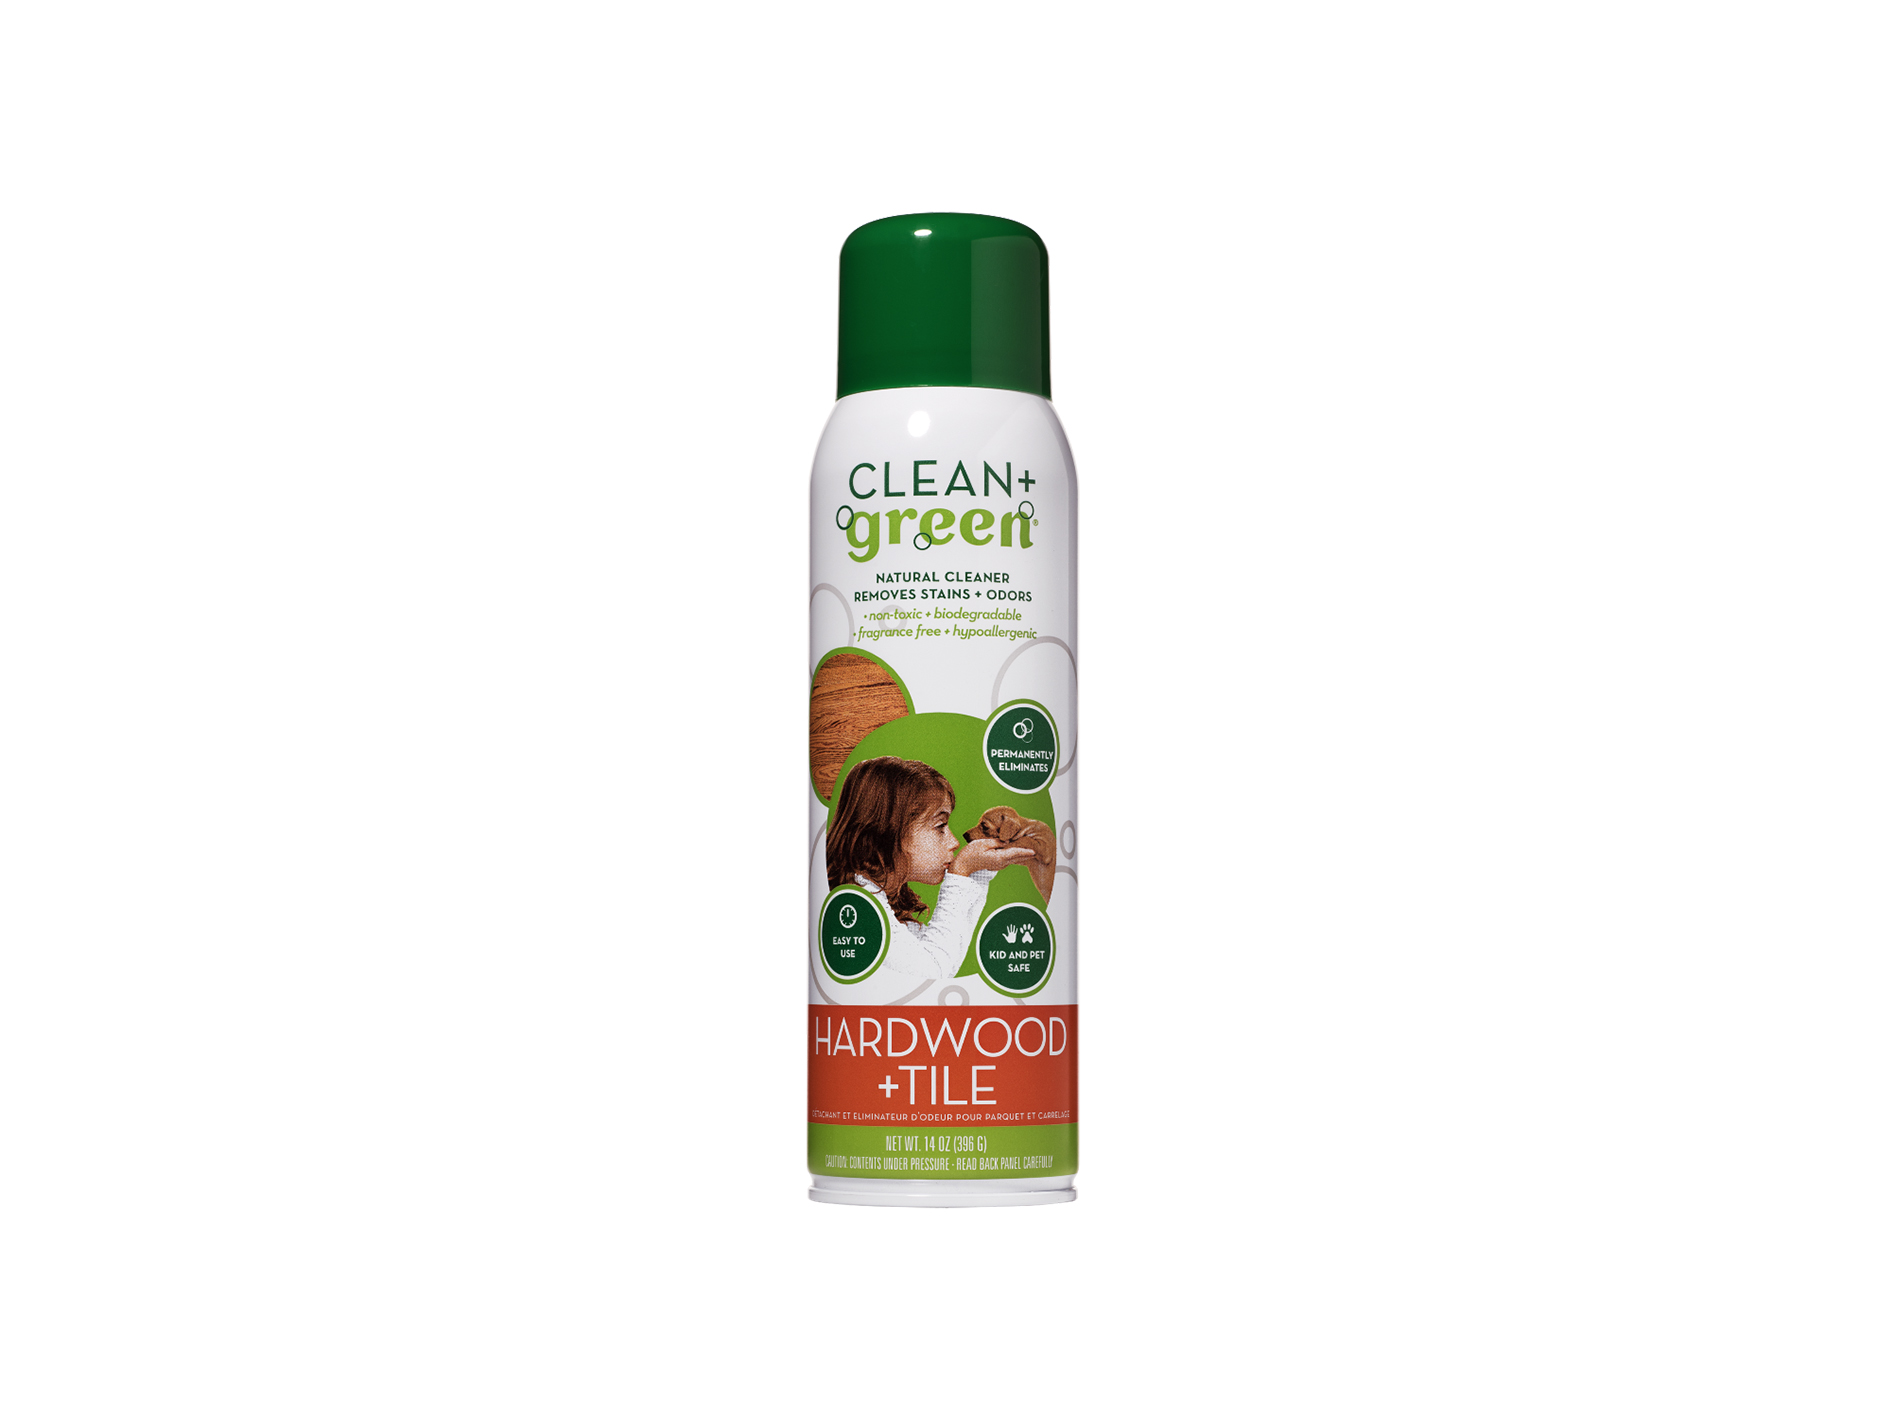 Clean+Green Hardwood & Tile Cleaner - Cardy Vacuum